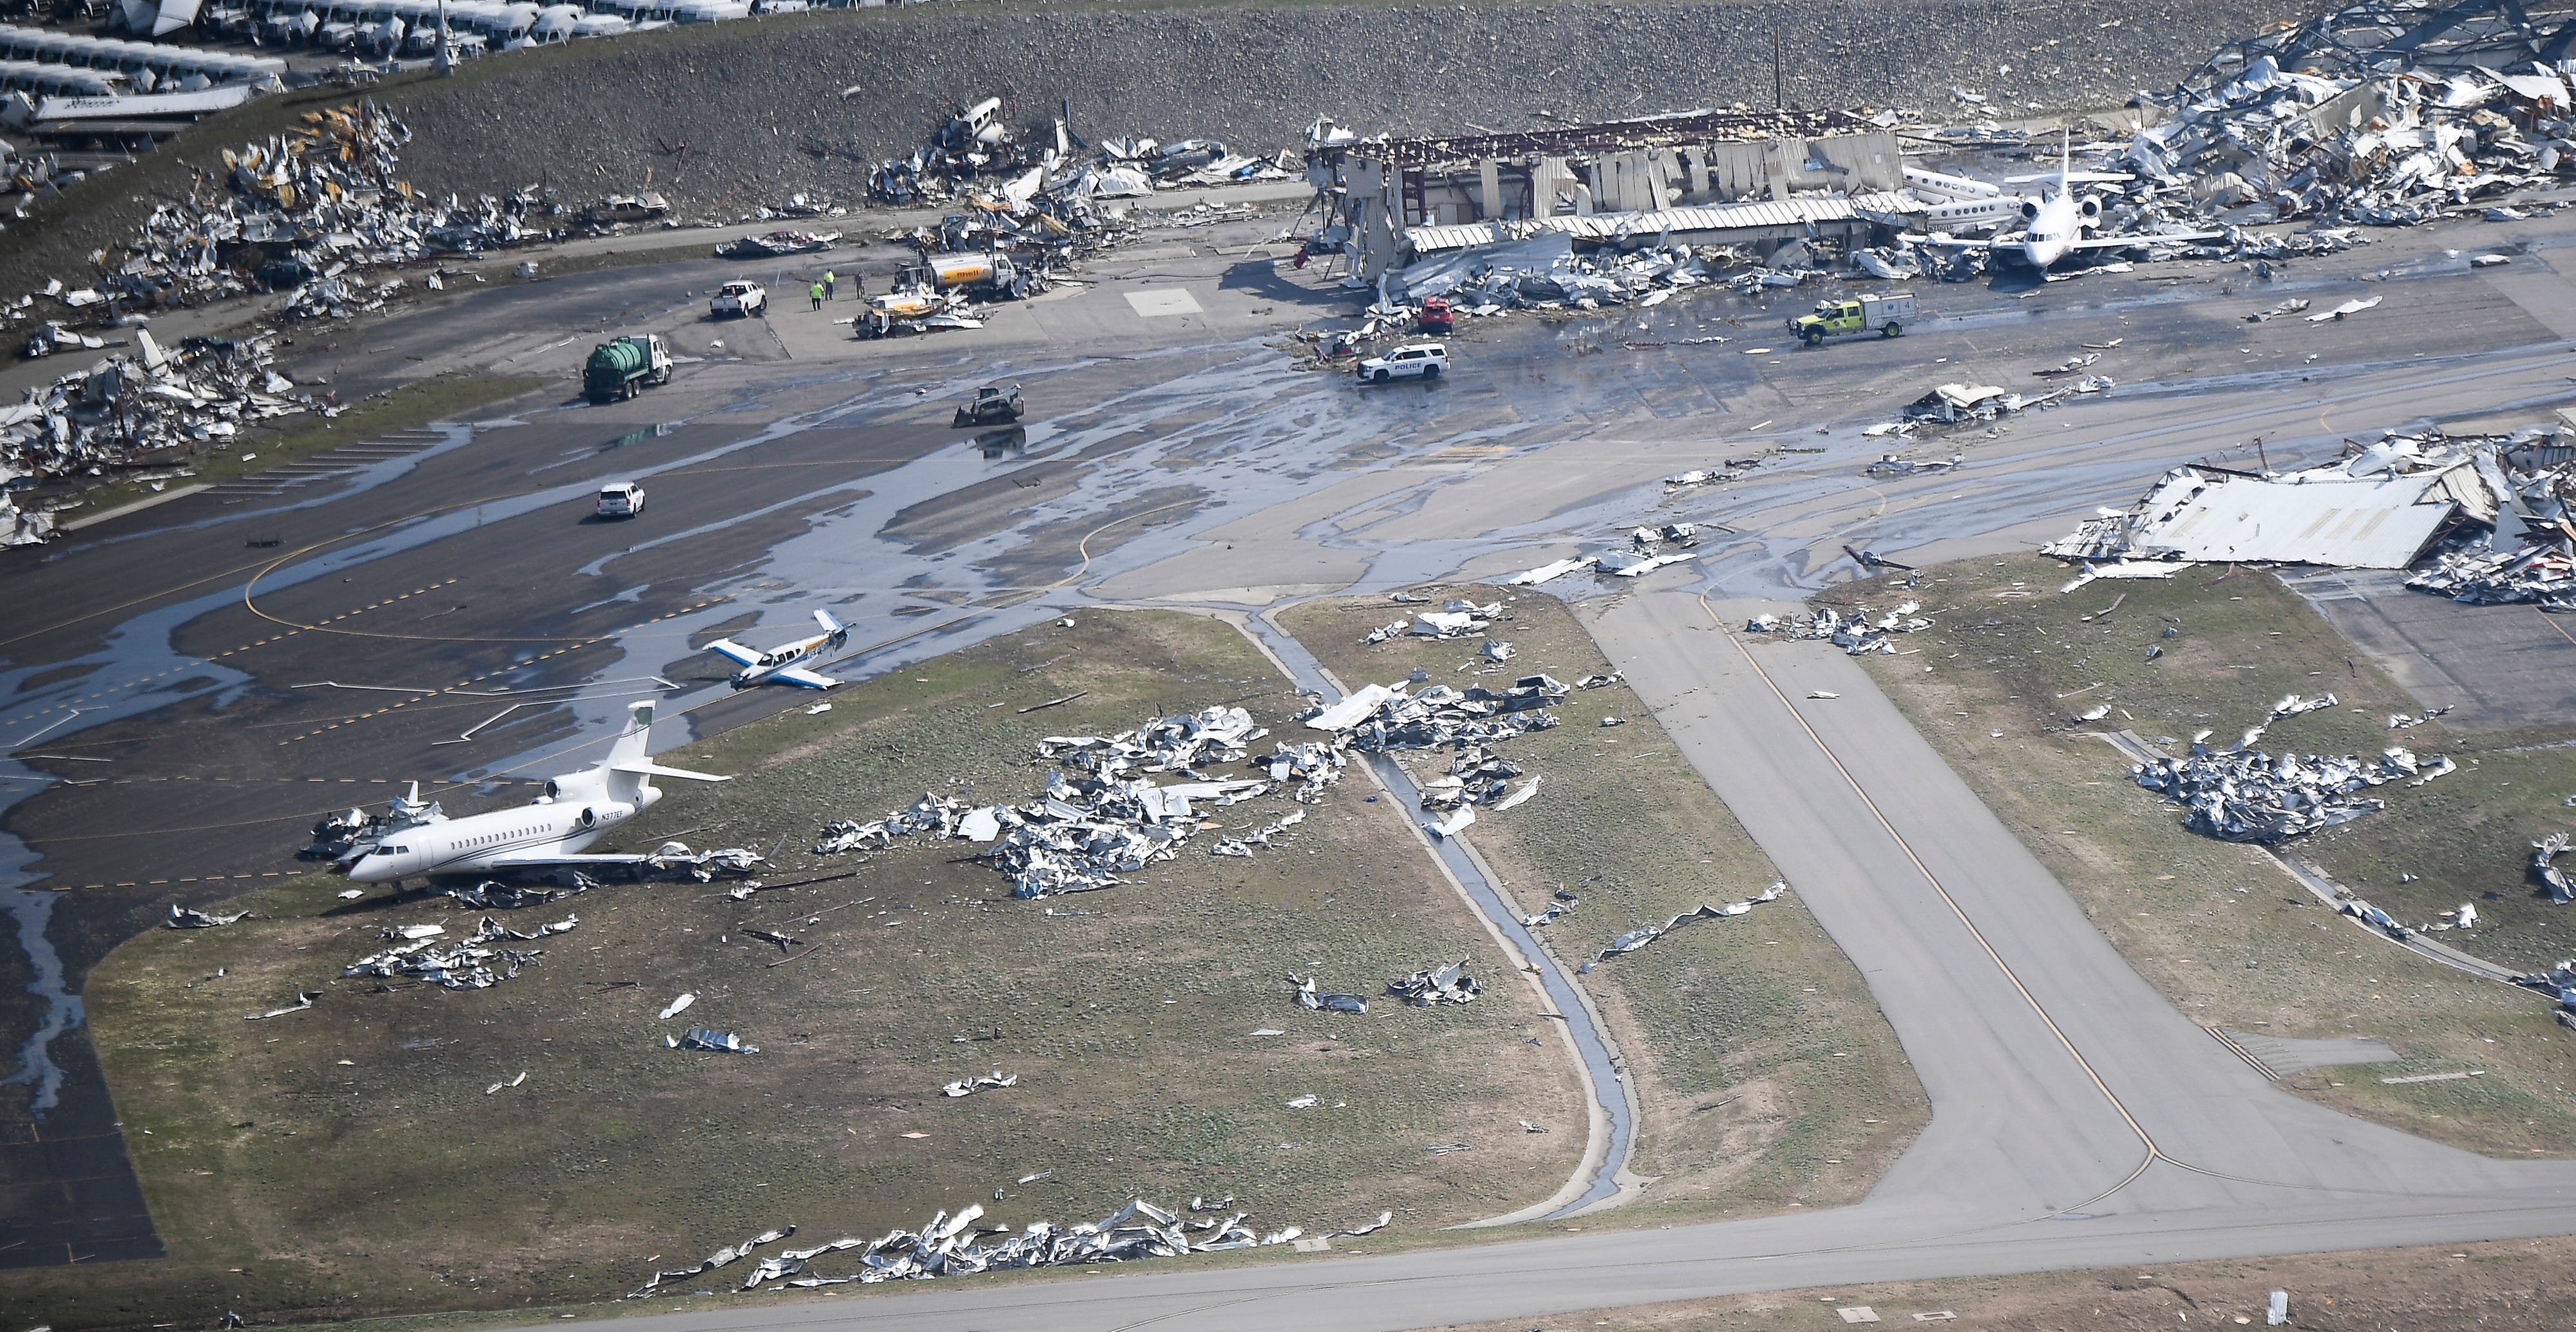 Nashville's John C. Tune Airport after a tornado ripped through the city in the early hours of Tuesday morning.